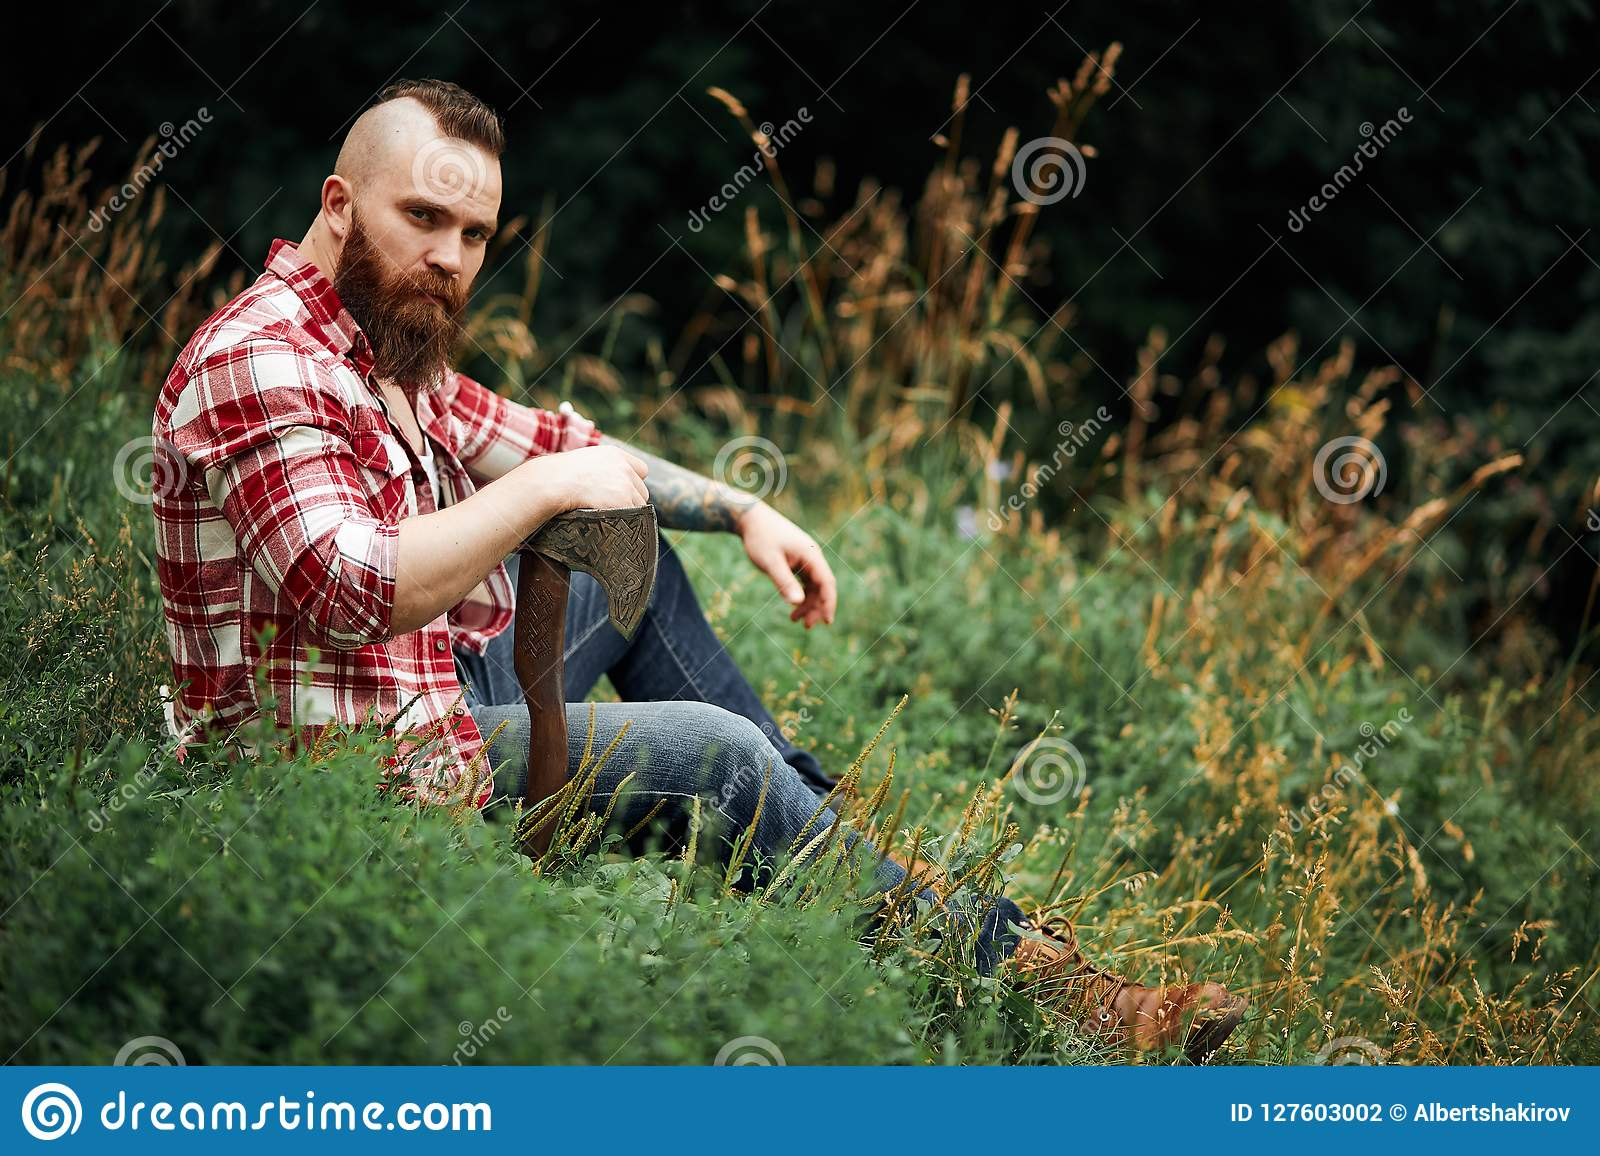 34c9afa0046 Brutal lumberjack in red shirt with beard holding axe sitting in Forest  after work